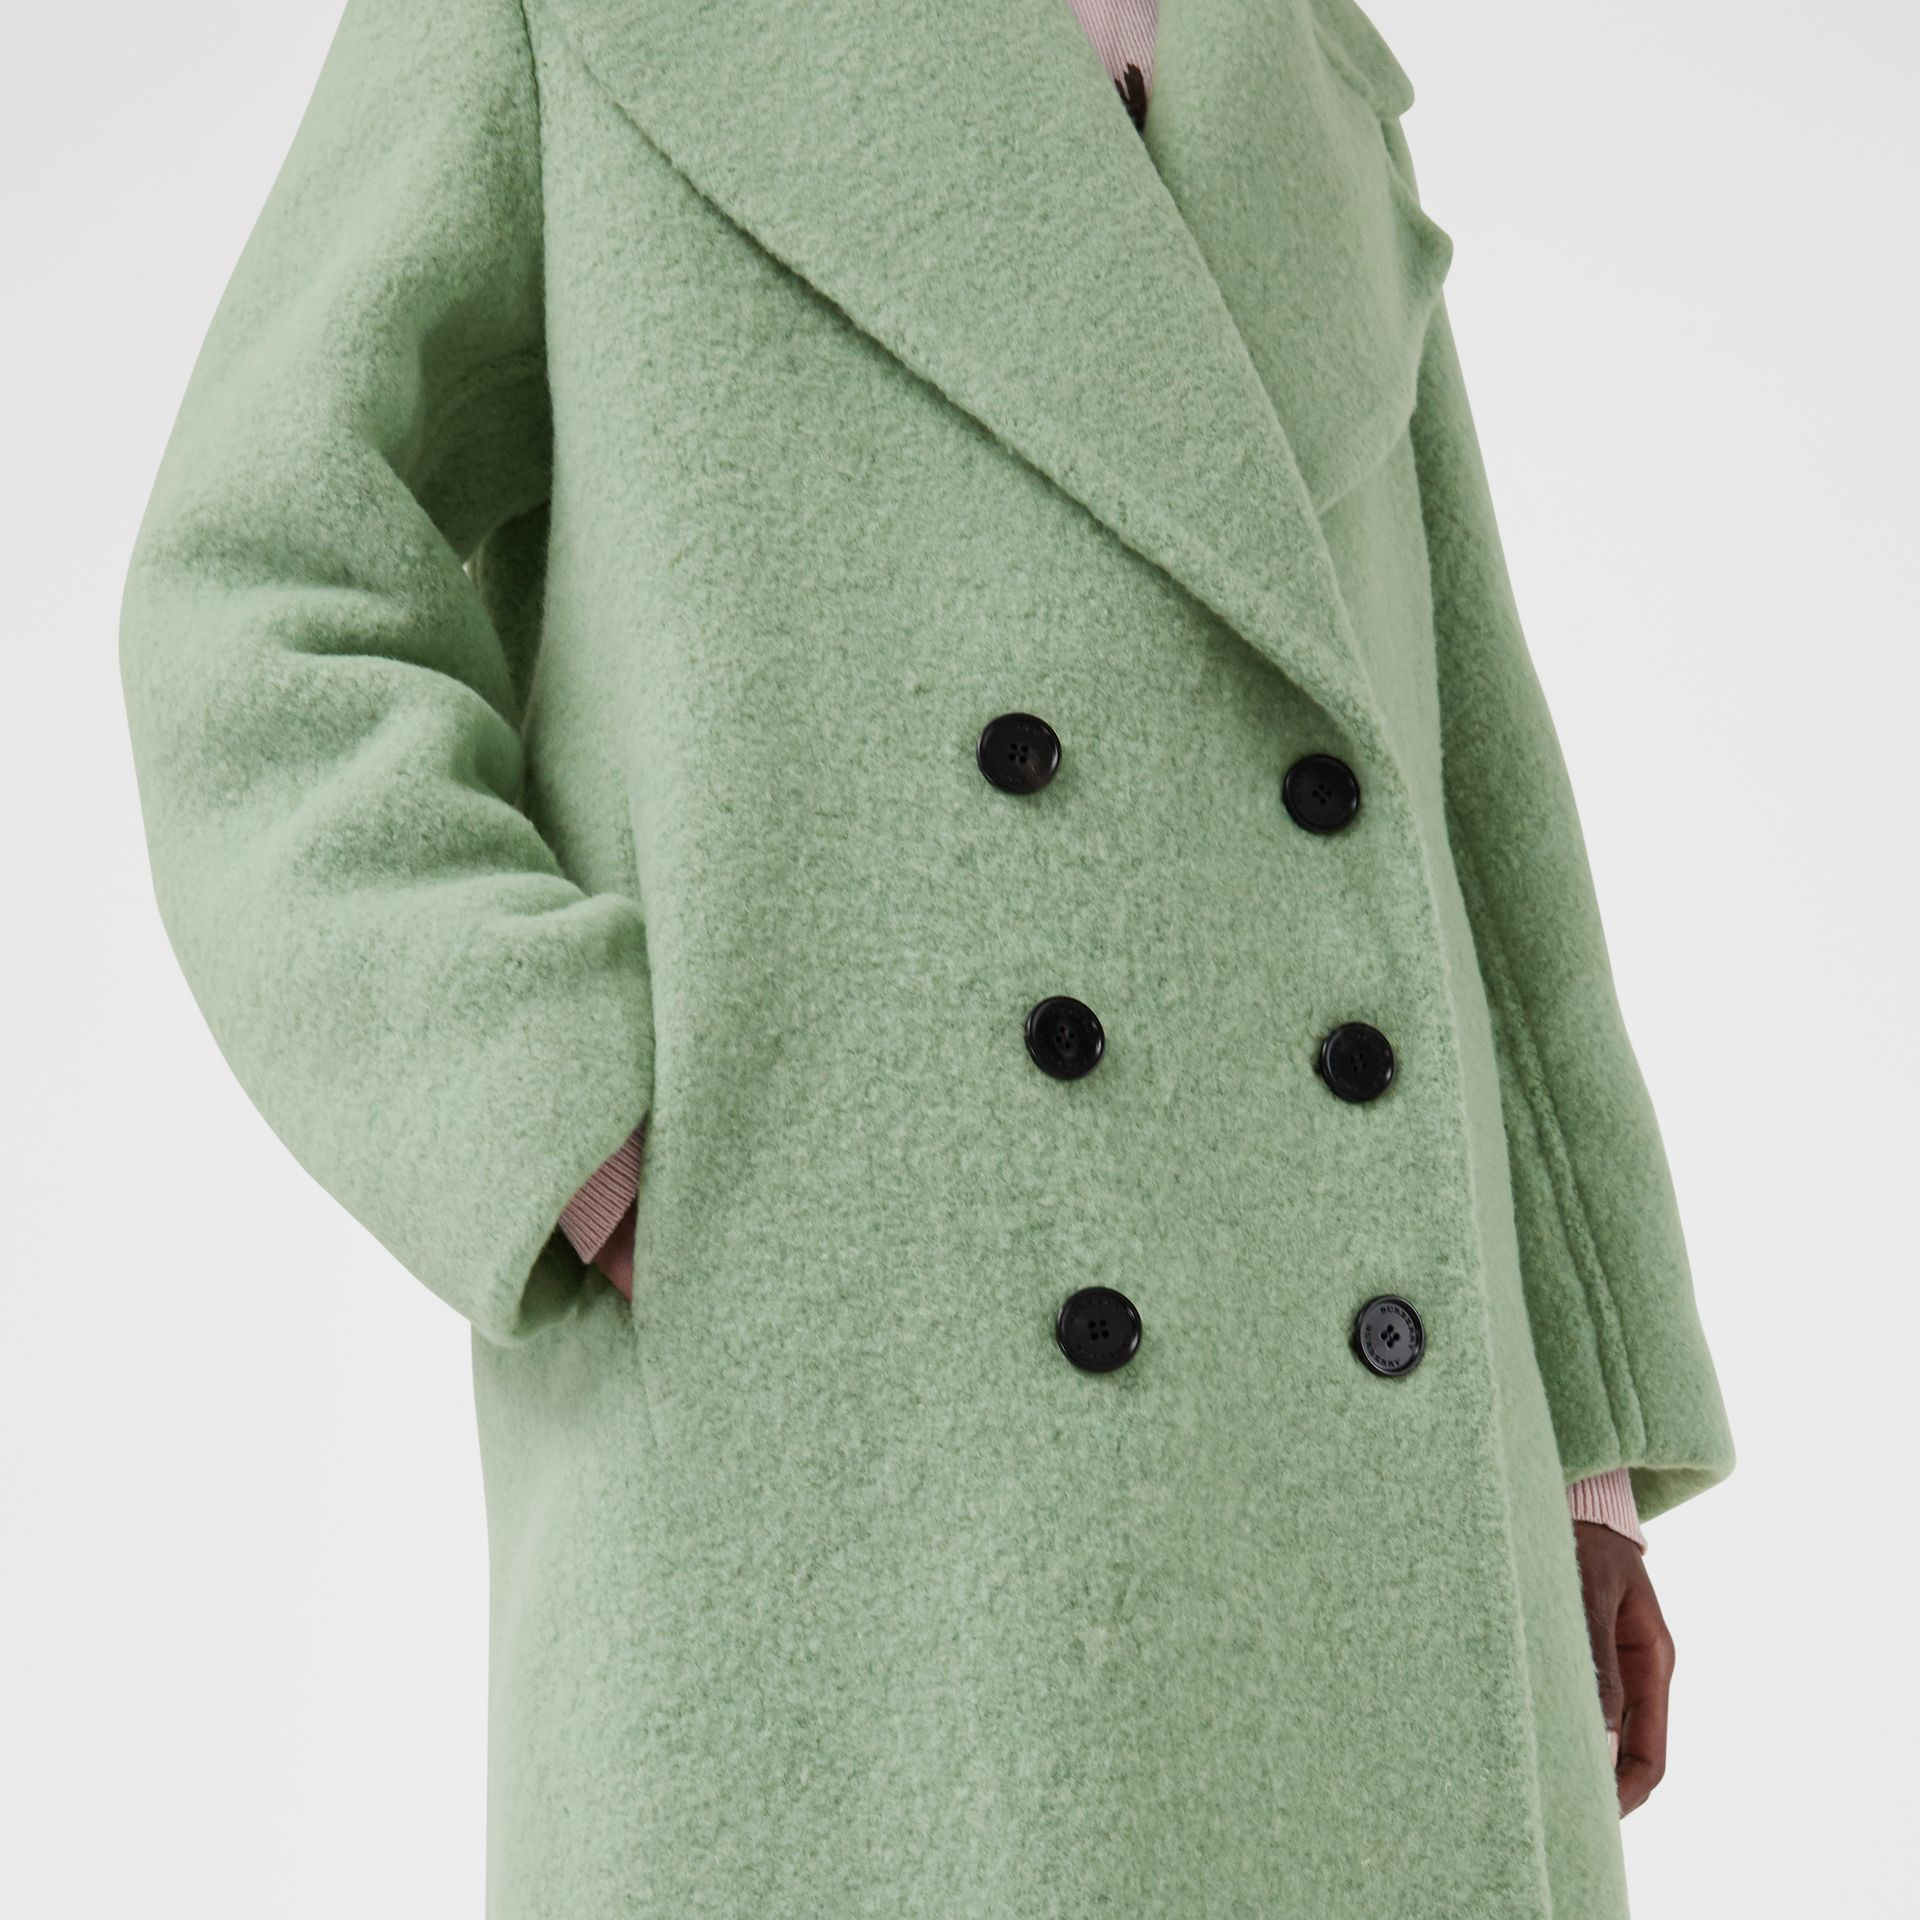 Double-faced Wool Alpaca Blend Oversized Coat in Celadon Green - Women | Burberry United Kingdom - gallery image 1